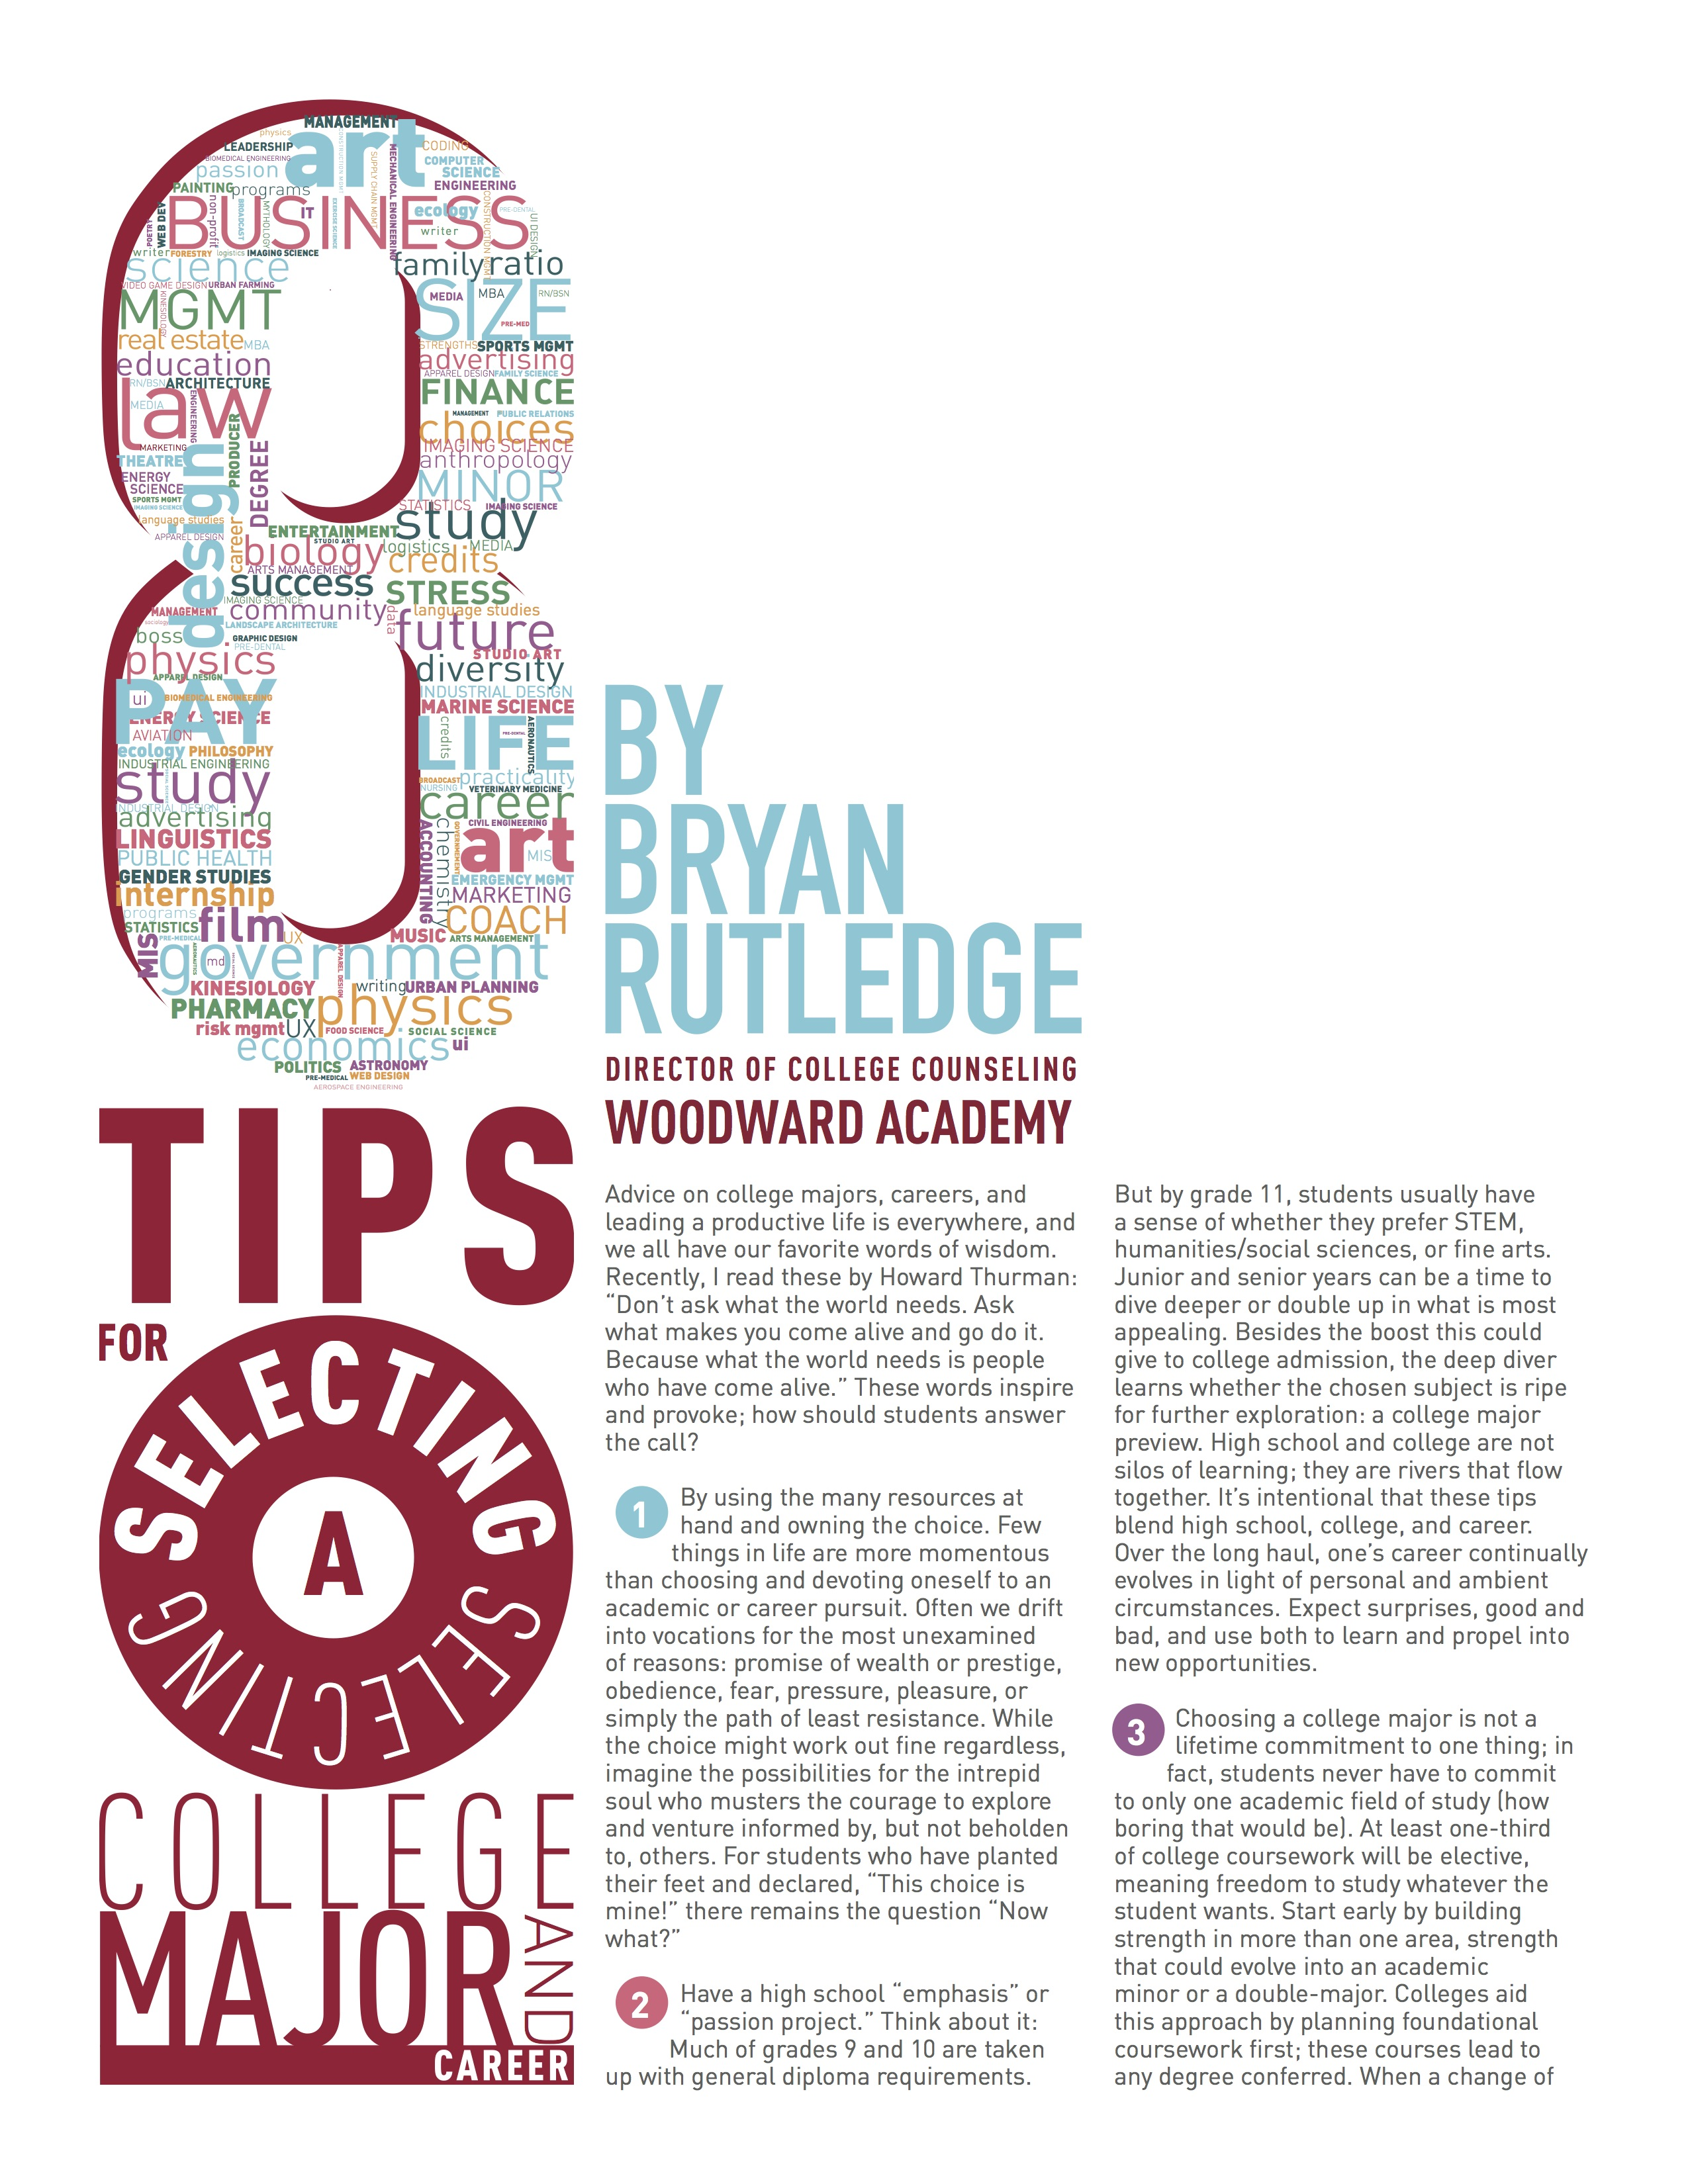 8 Tips for Selecting a College Major and Career